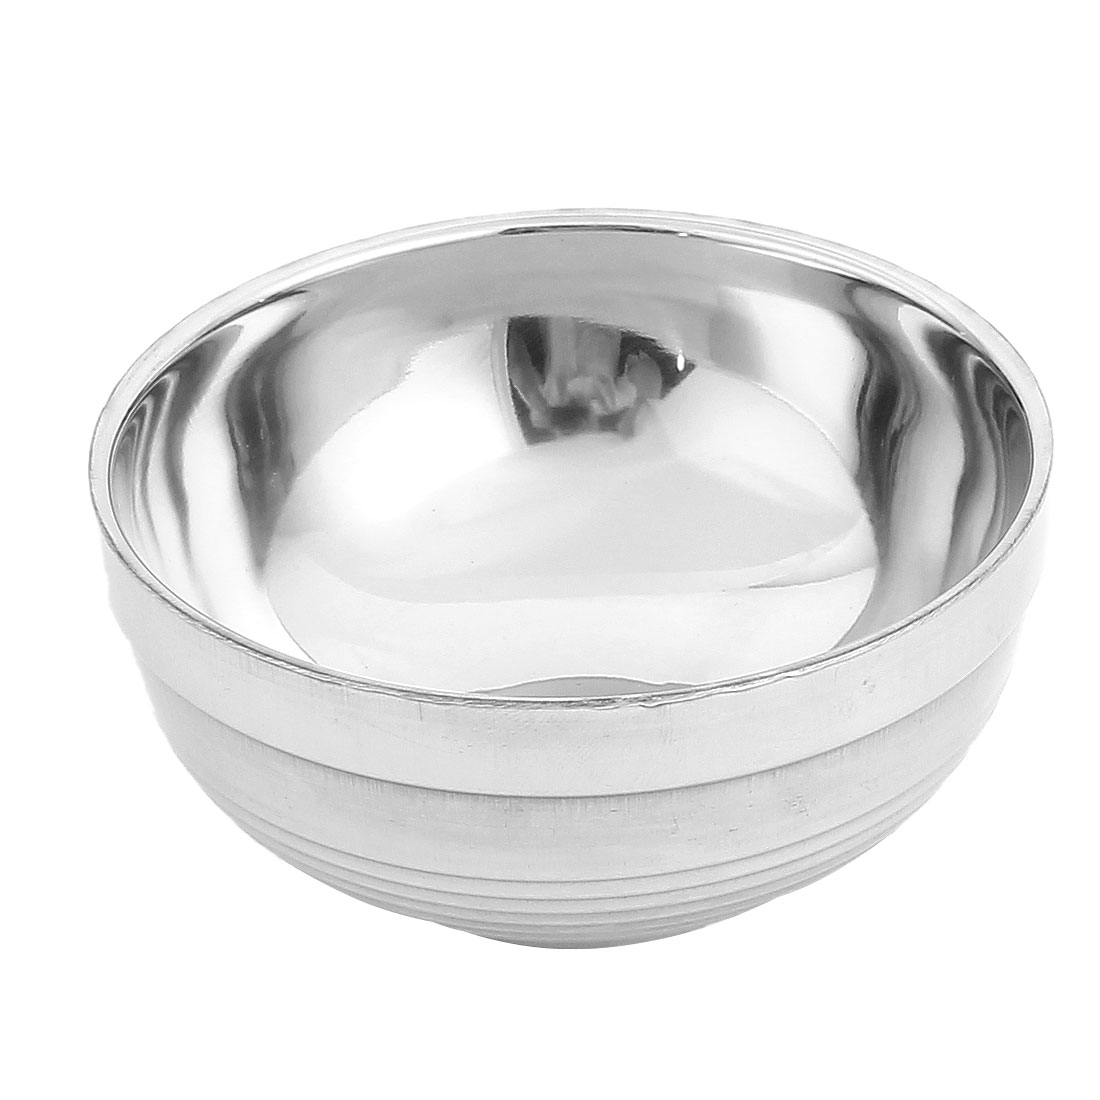 Home Kitchen Stainless Steel Dinner Rice Soup Noodle Food Bowl Silver Tone